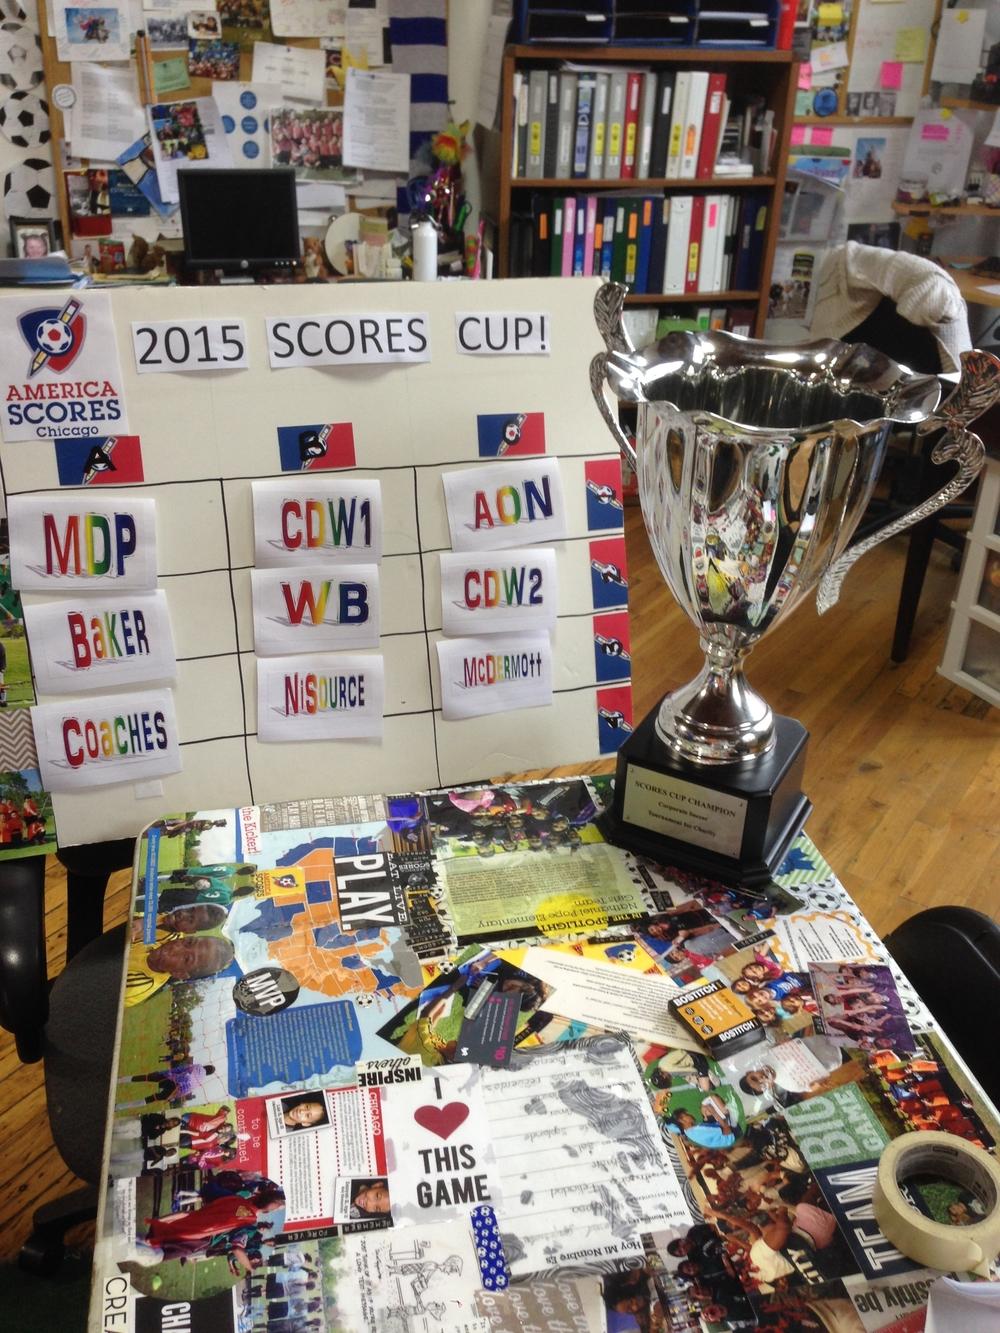 Our 2015 SCORES Cup Draw board highlighting the 3 groups and teams in each.The coveted SCORES Cup is waiting to be claimed by it's rightful winner.